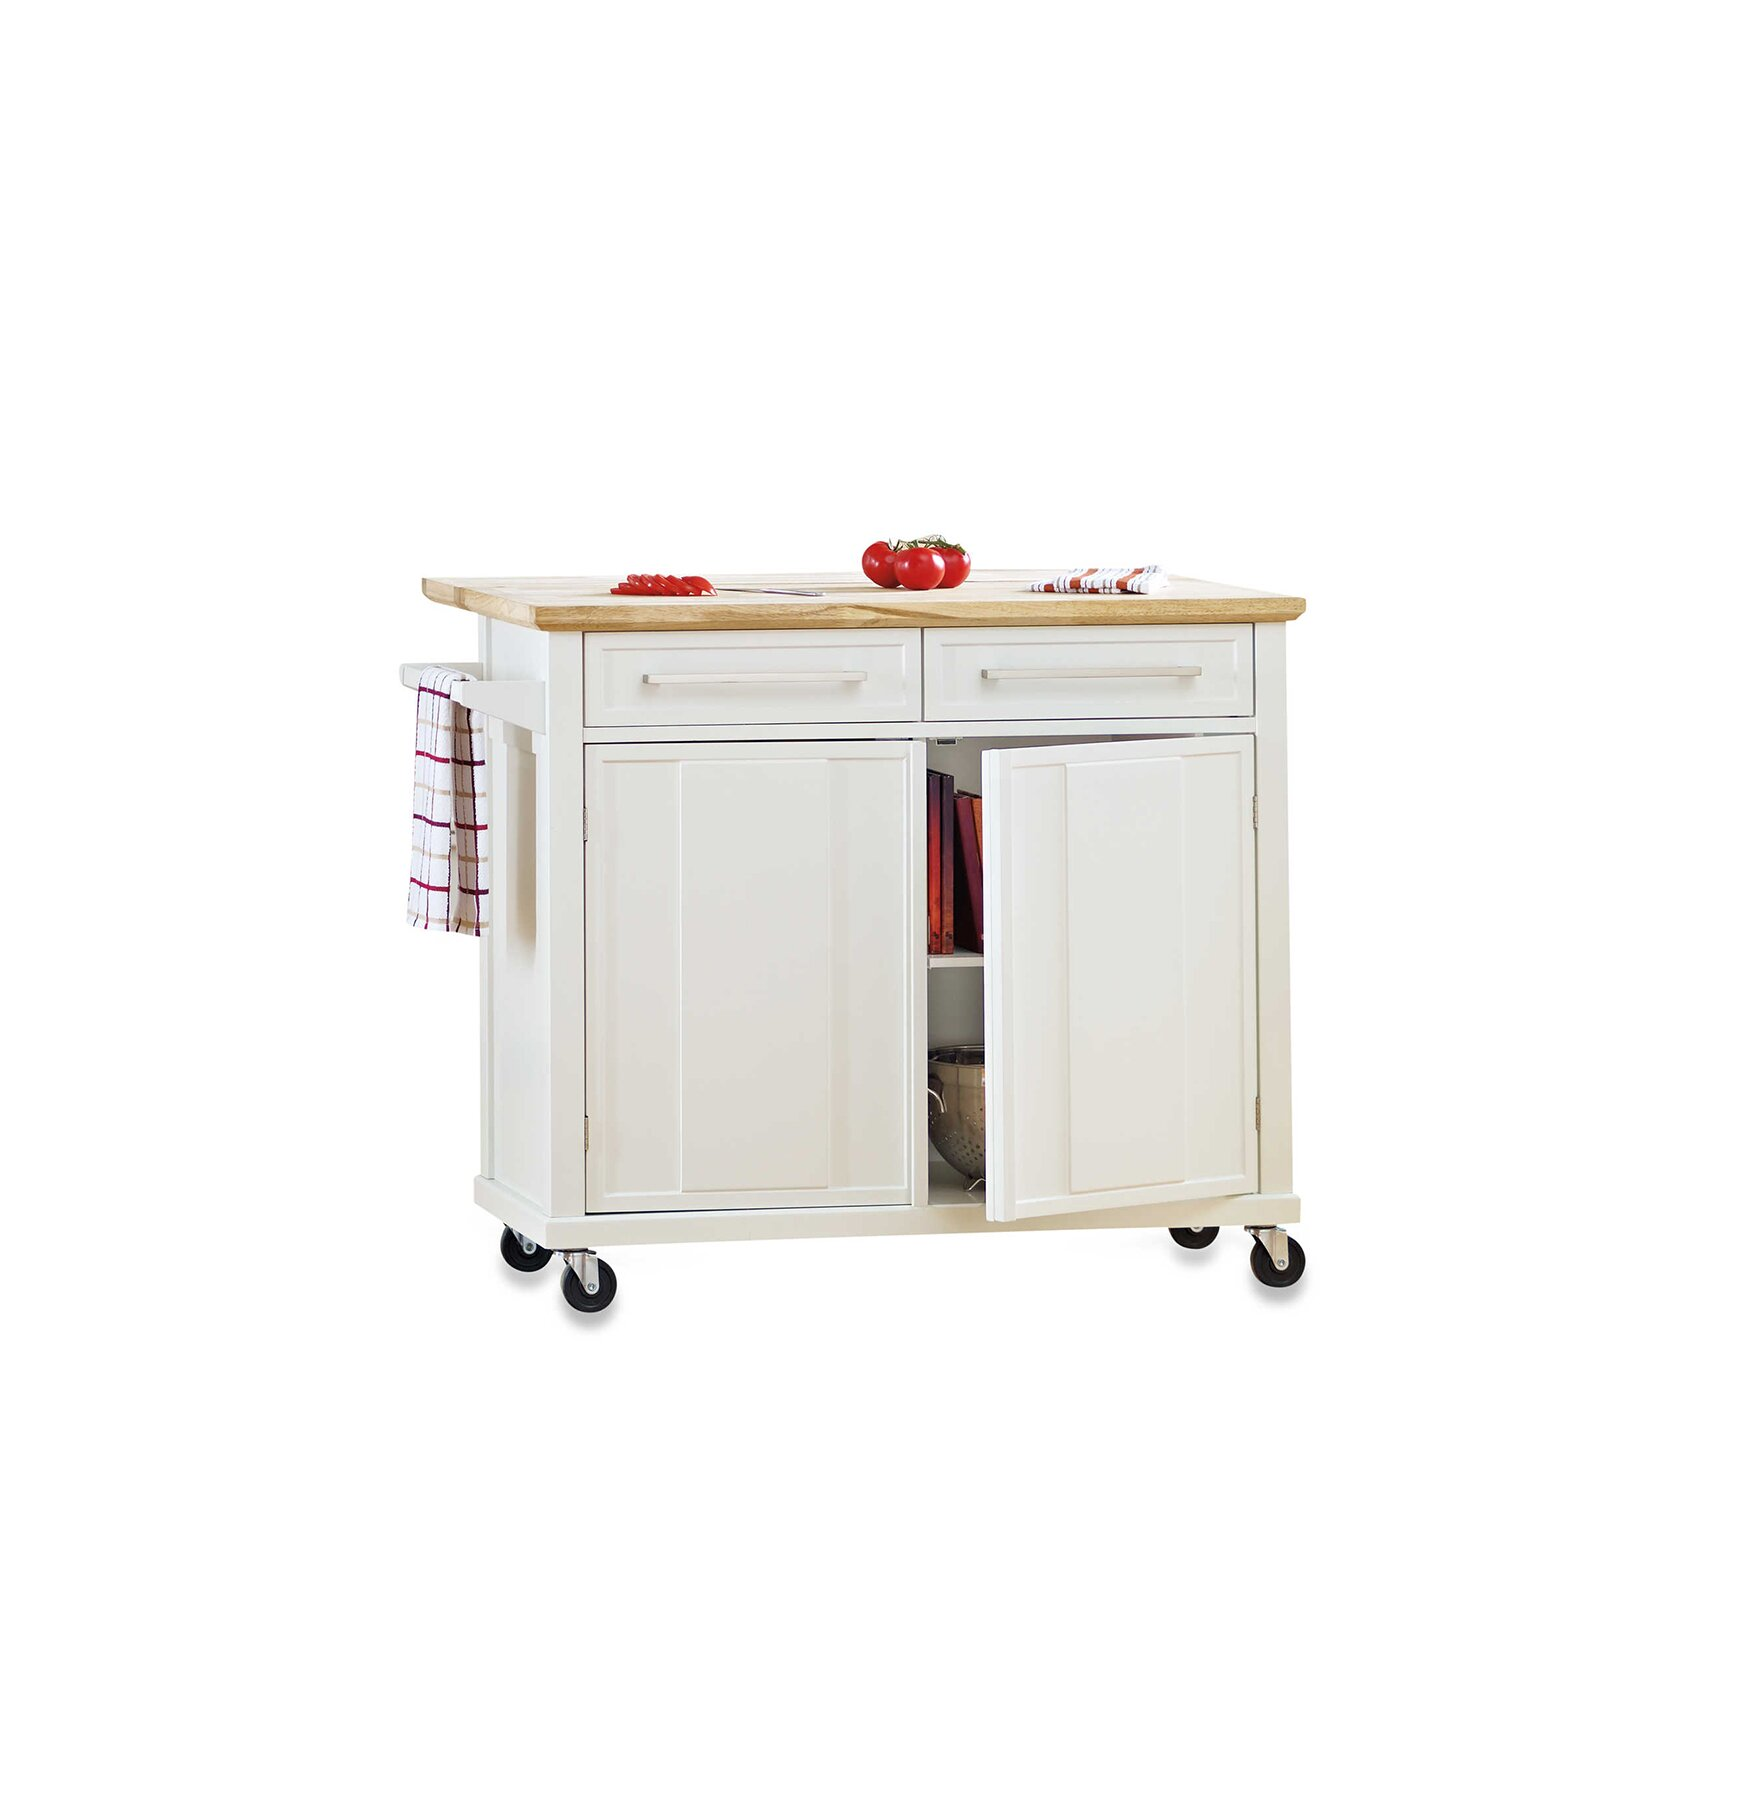 Portable Kitchen Islands Real Simple - Roll away kitchen island